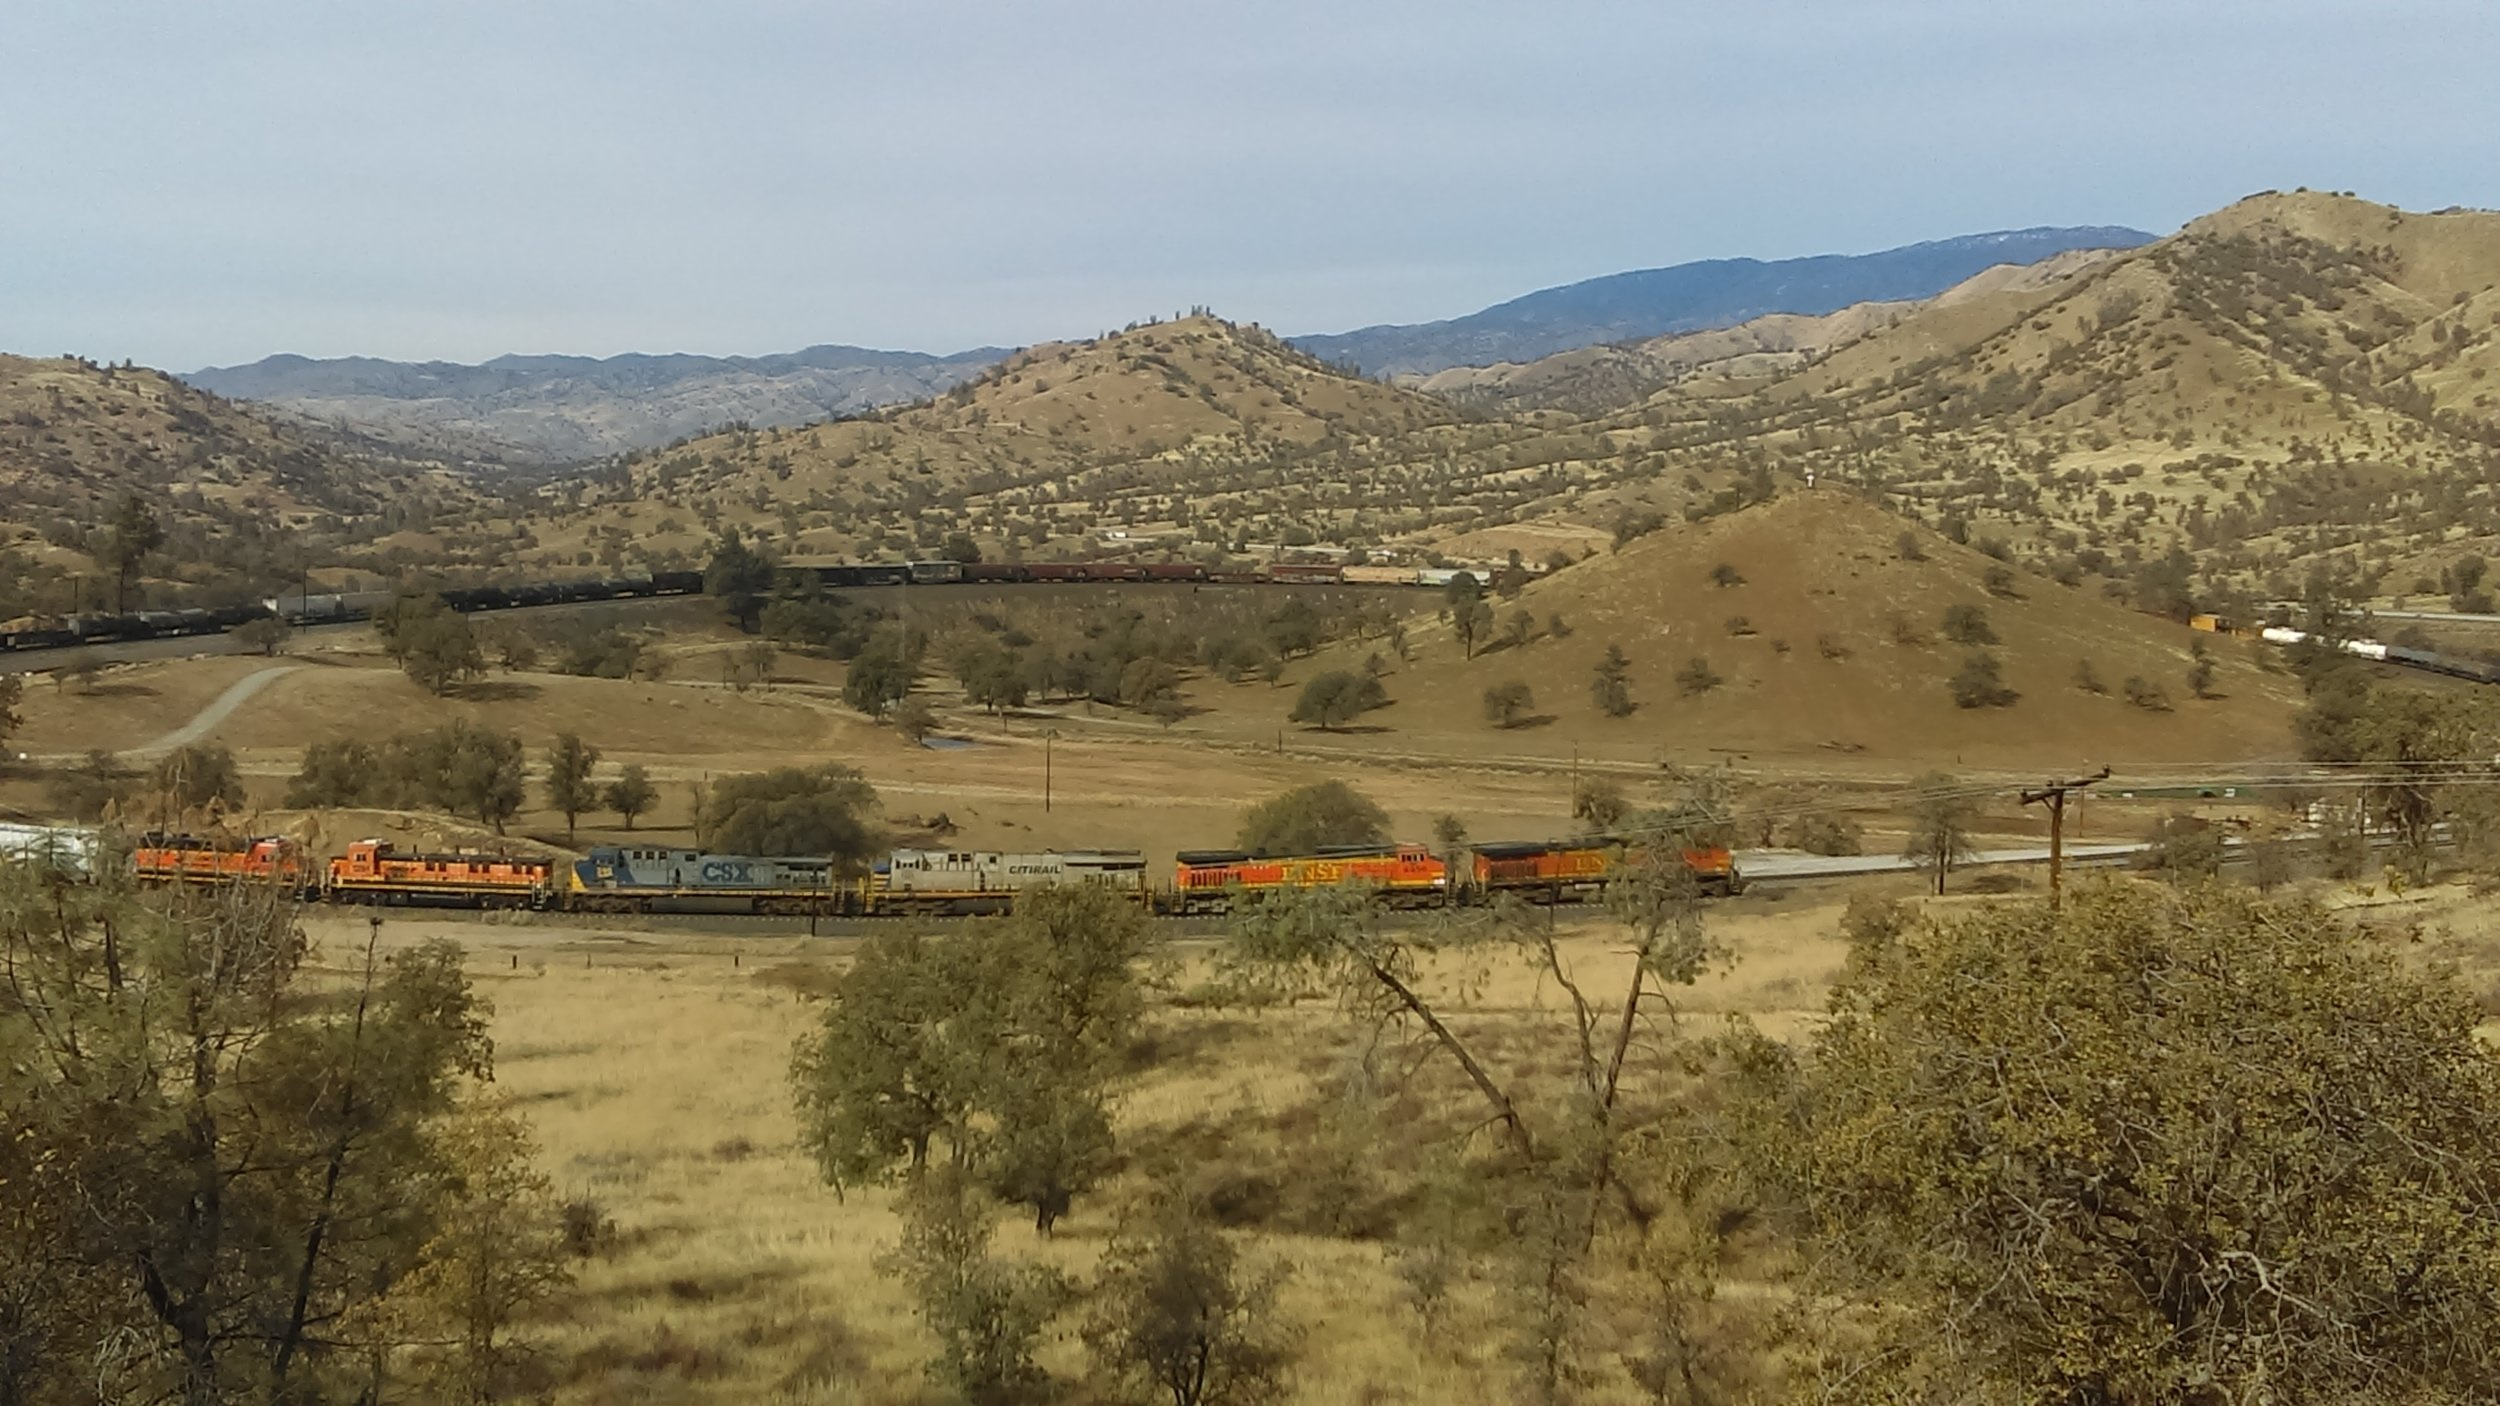 Built in 1876, the Tehachapi Pass Line was the first railroad into Southern California. To keep the incline to a steady 2.2% grade, the line makes multiple sweeping curves and crosses over itself hallway up the grade to Tehachapi, in Walong, CA. In this photo, a BNSF manifest freight navigates the loop, crossing over itself in the process. Photo by Alex Lewis, 2018.